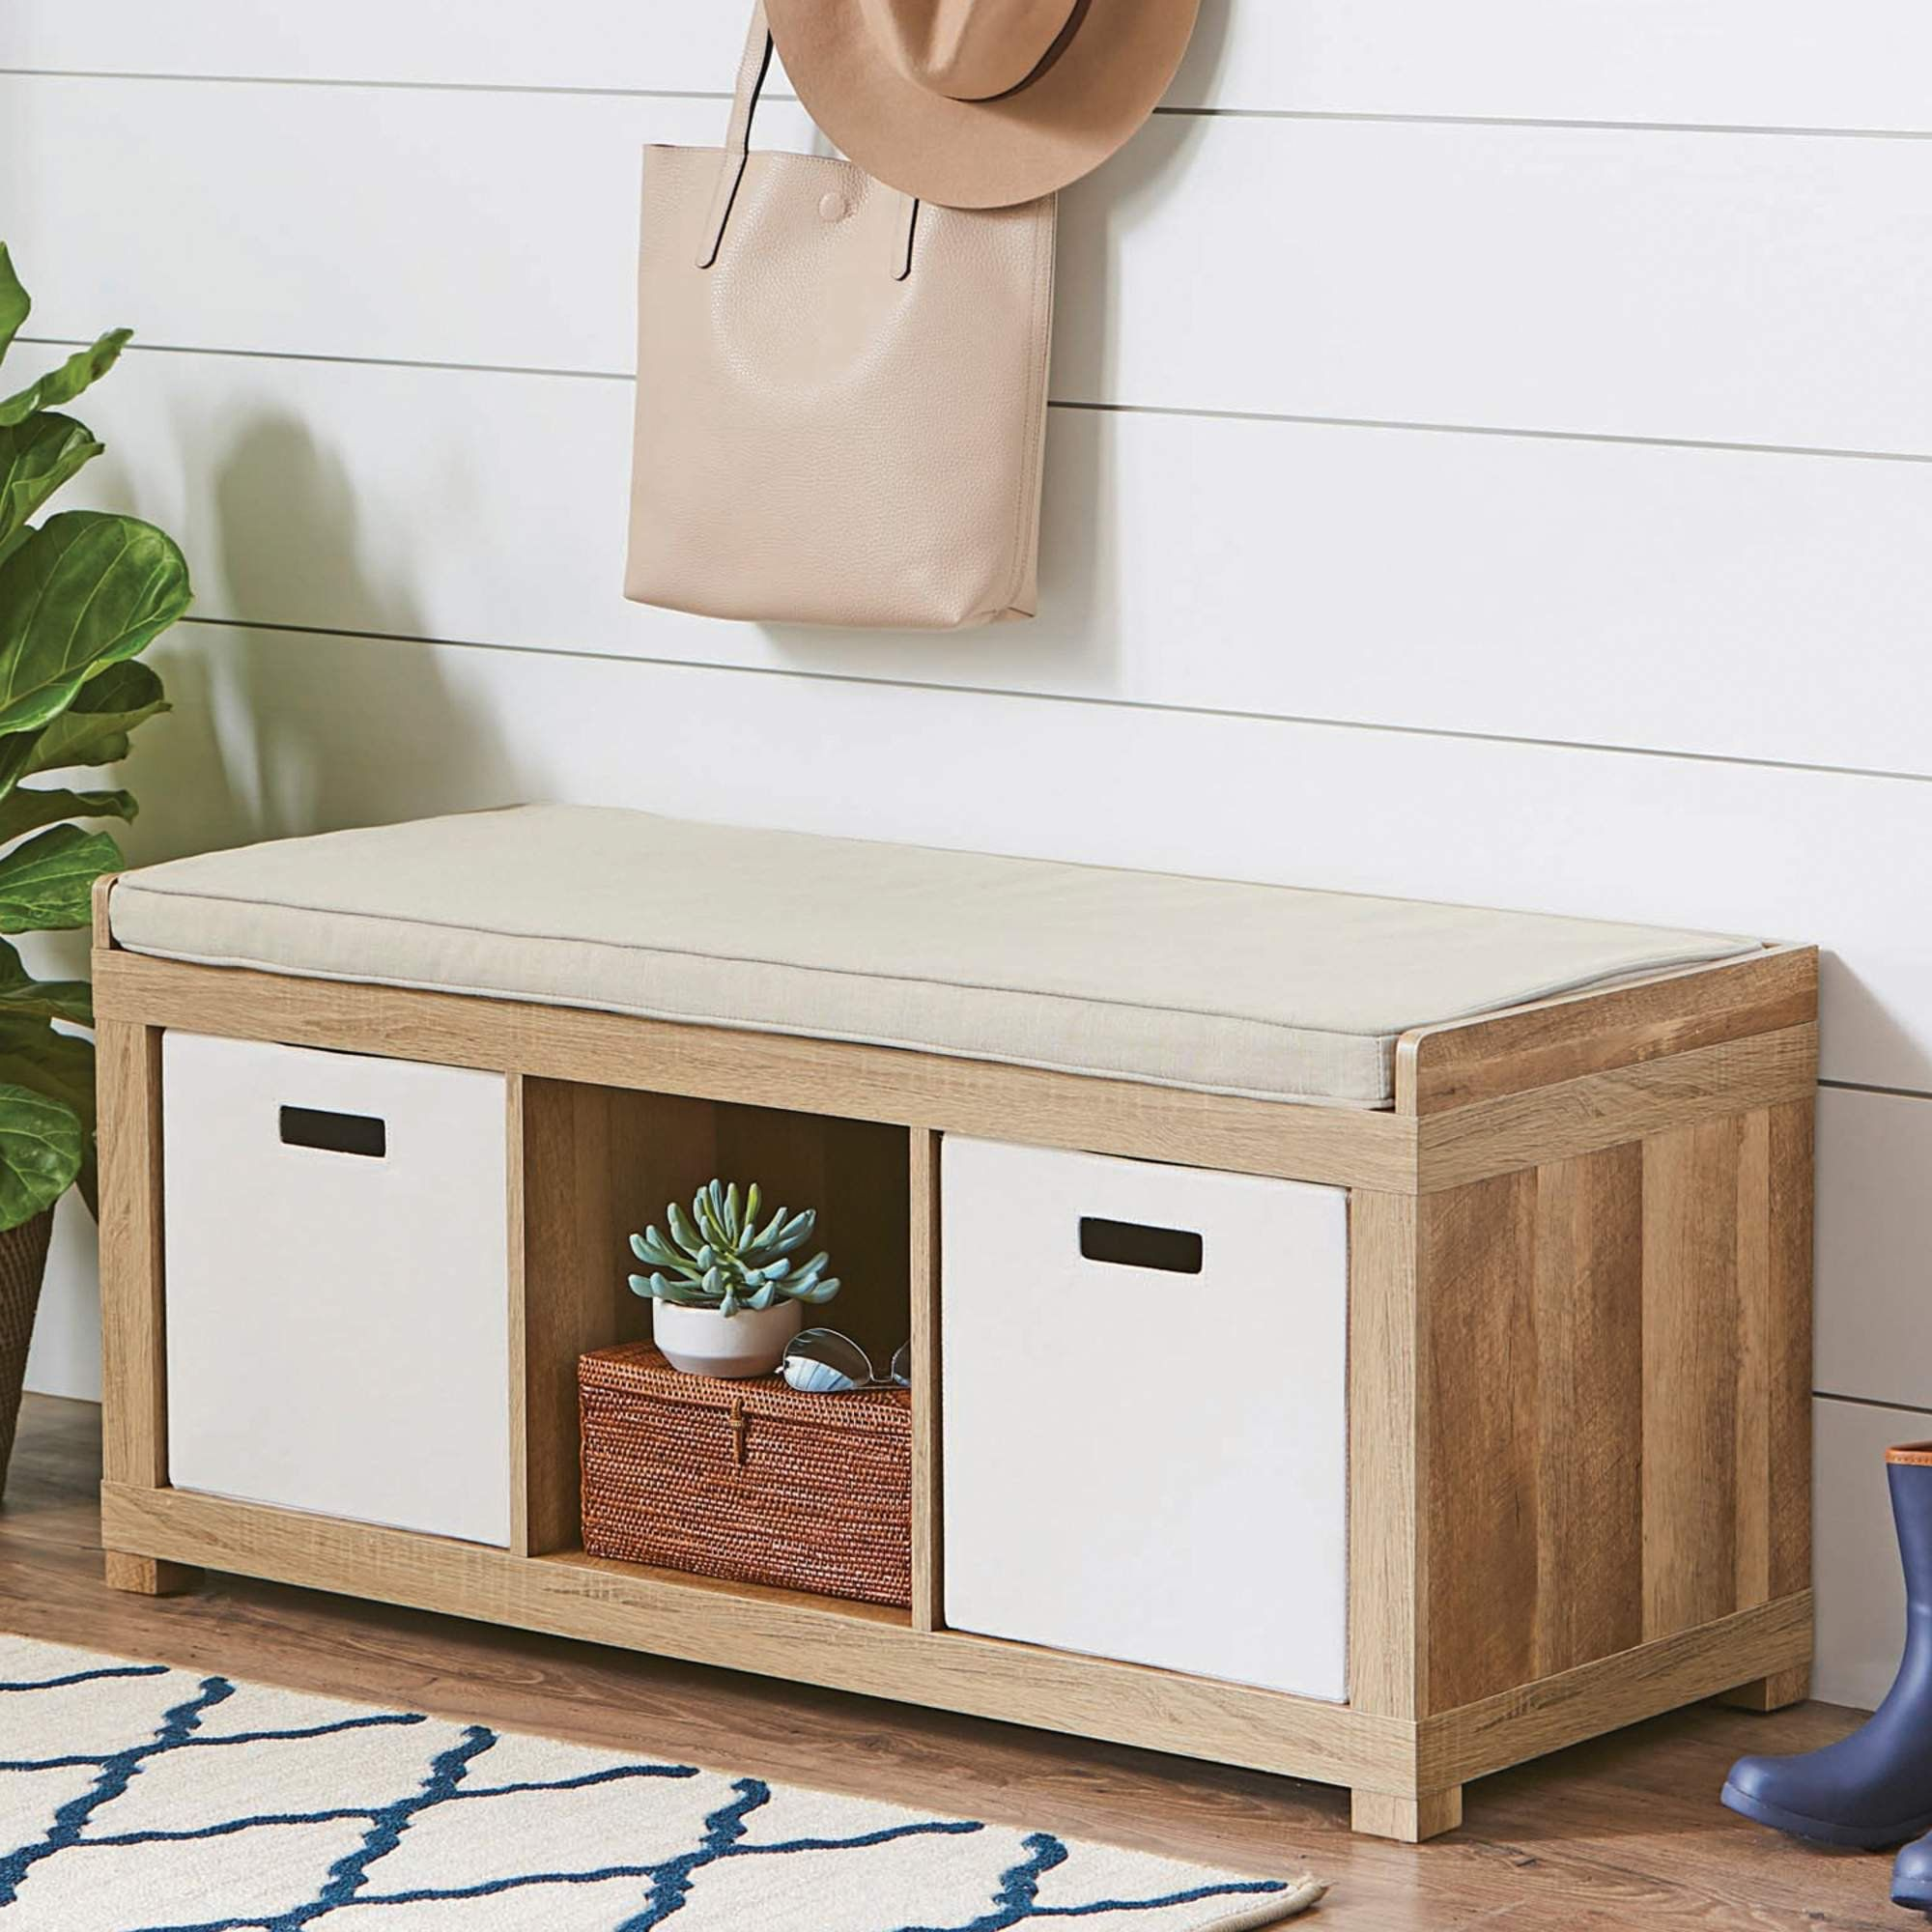 c642d7a405558973ff9b21d2b2ca0087 - Better Homes And Gardens 3 Cube Organizer Bench Weathered